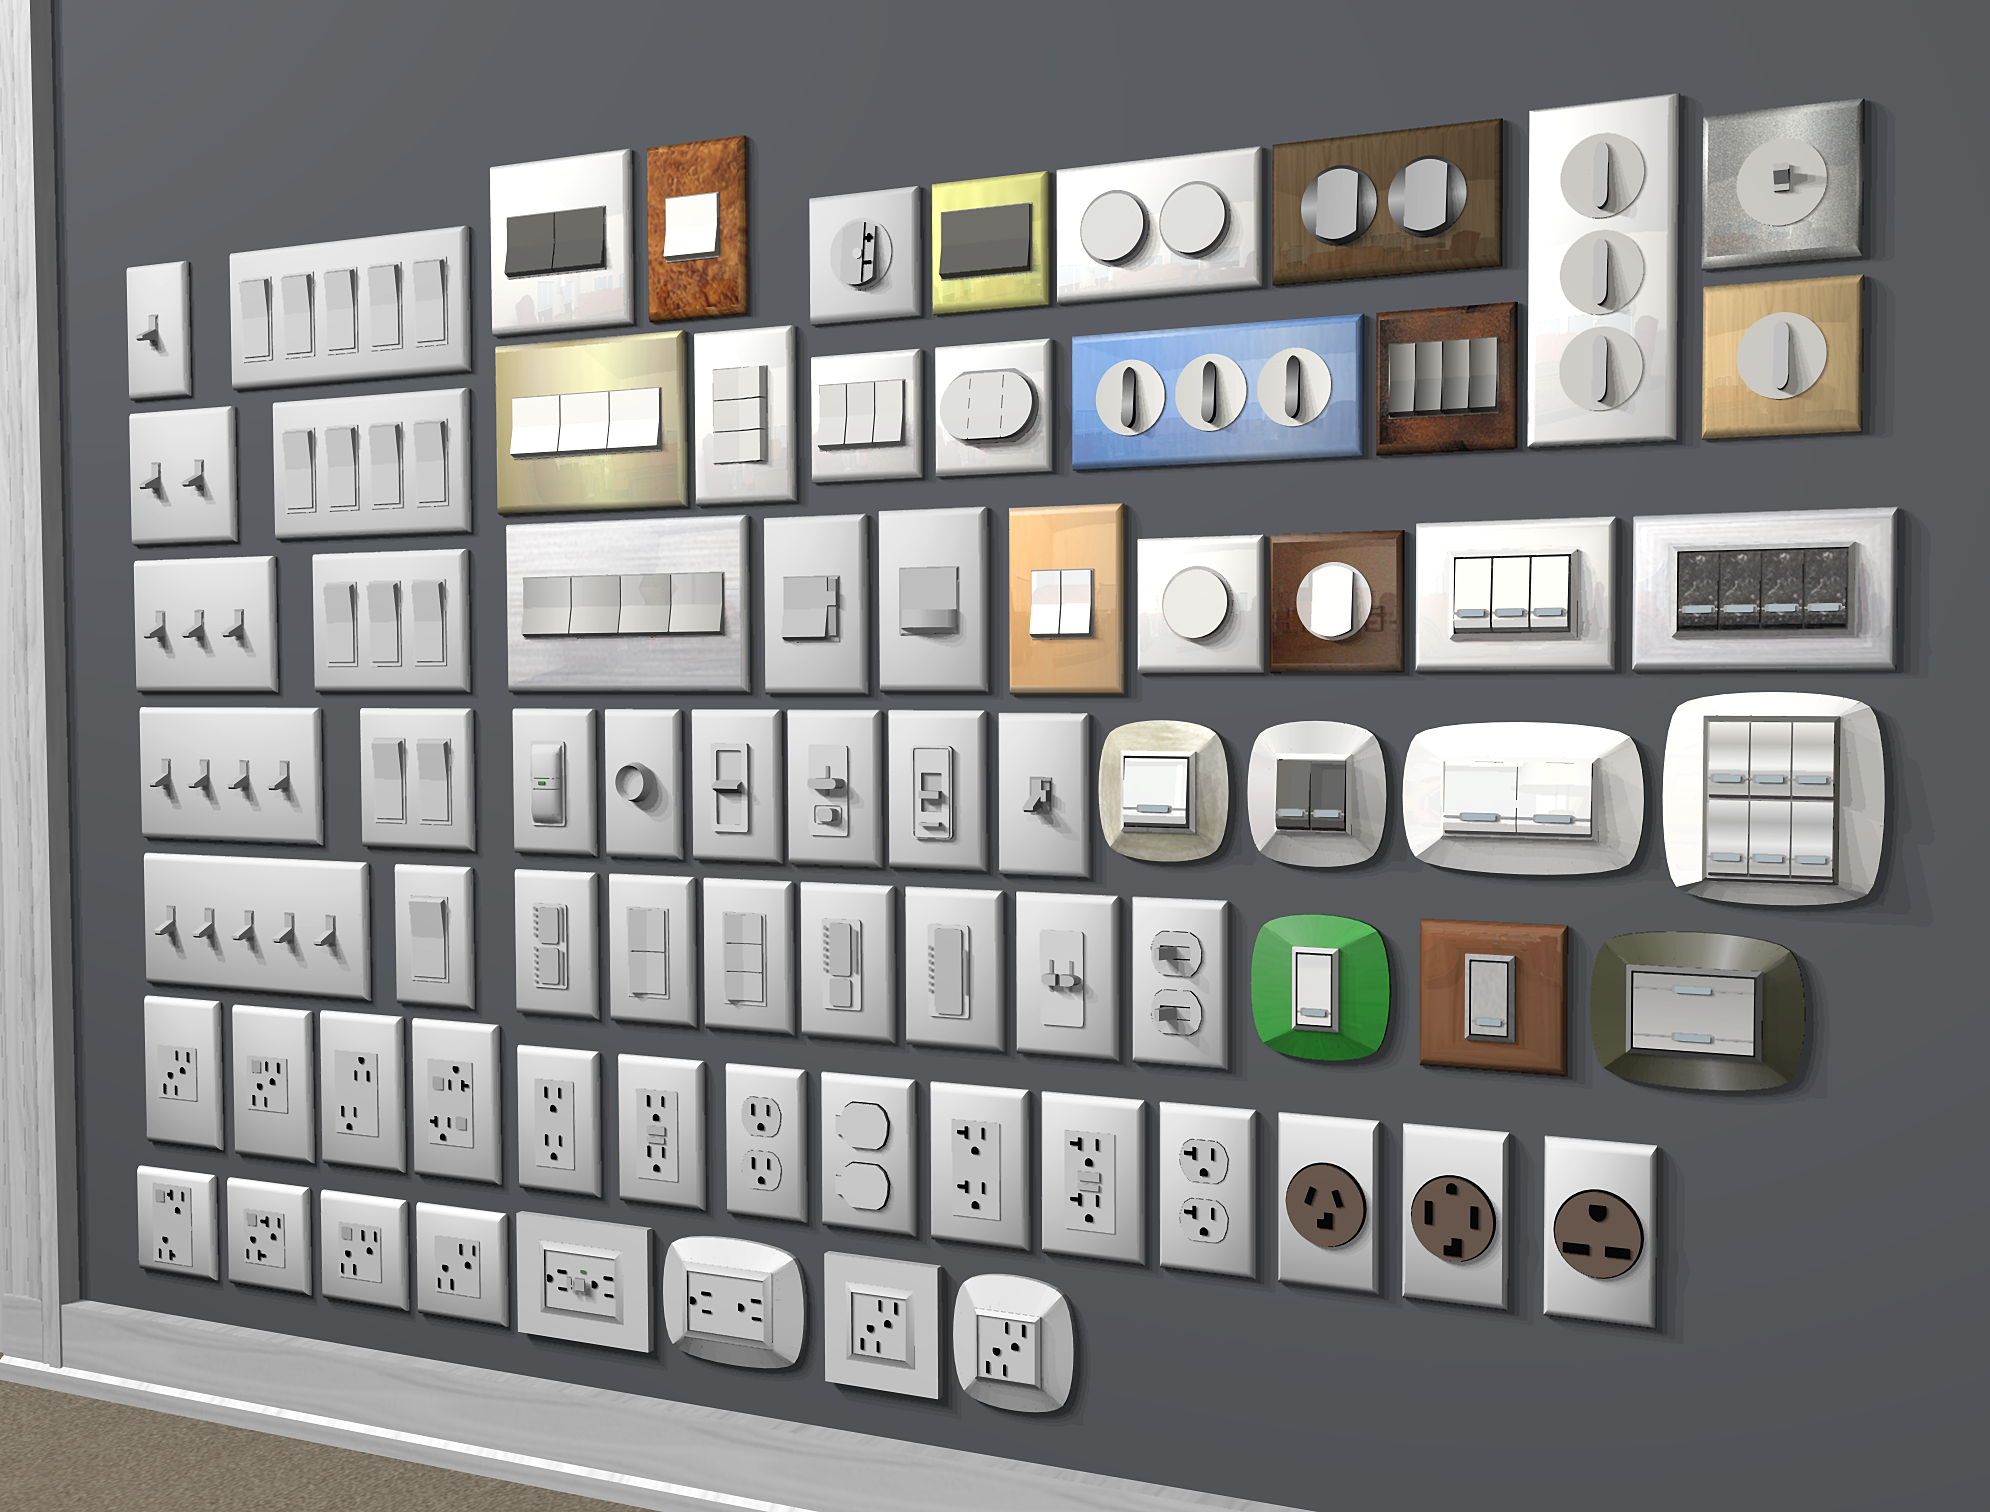 Rkne Home Design Studio For Mac V17 5 Punch Software Official Site Endless Electrical Switches And Outlet